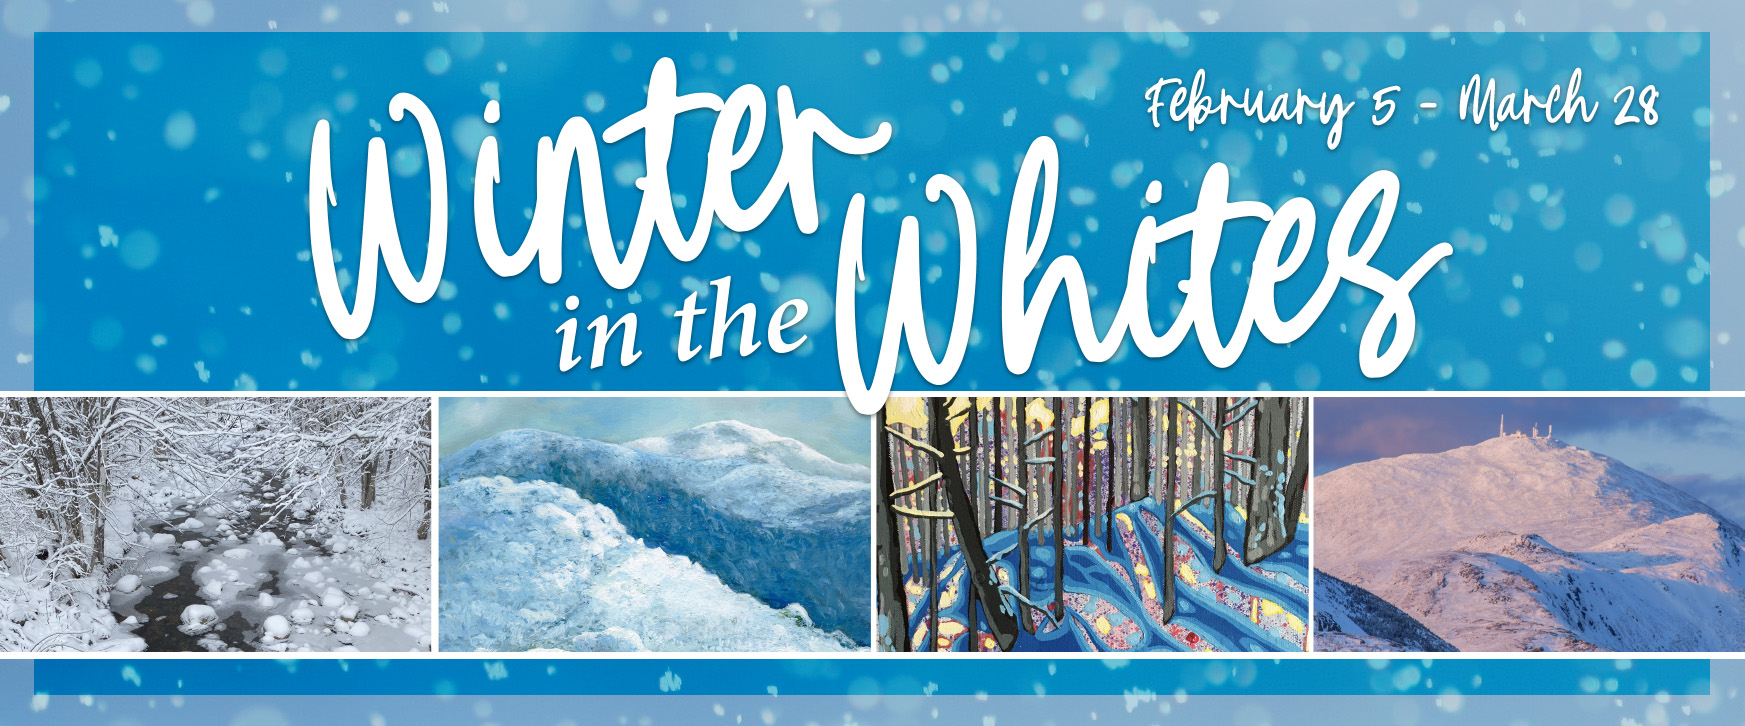 WREN's Winter in the Whites Gallery Exhibition runs from January 5 through March 28